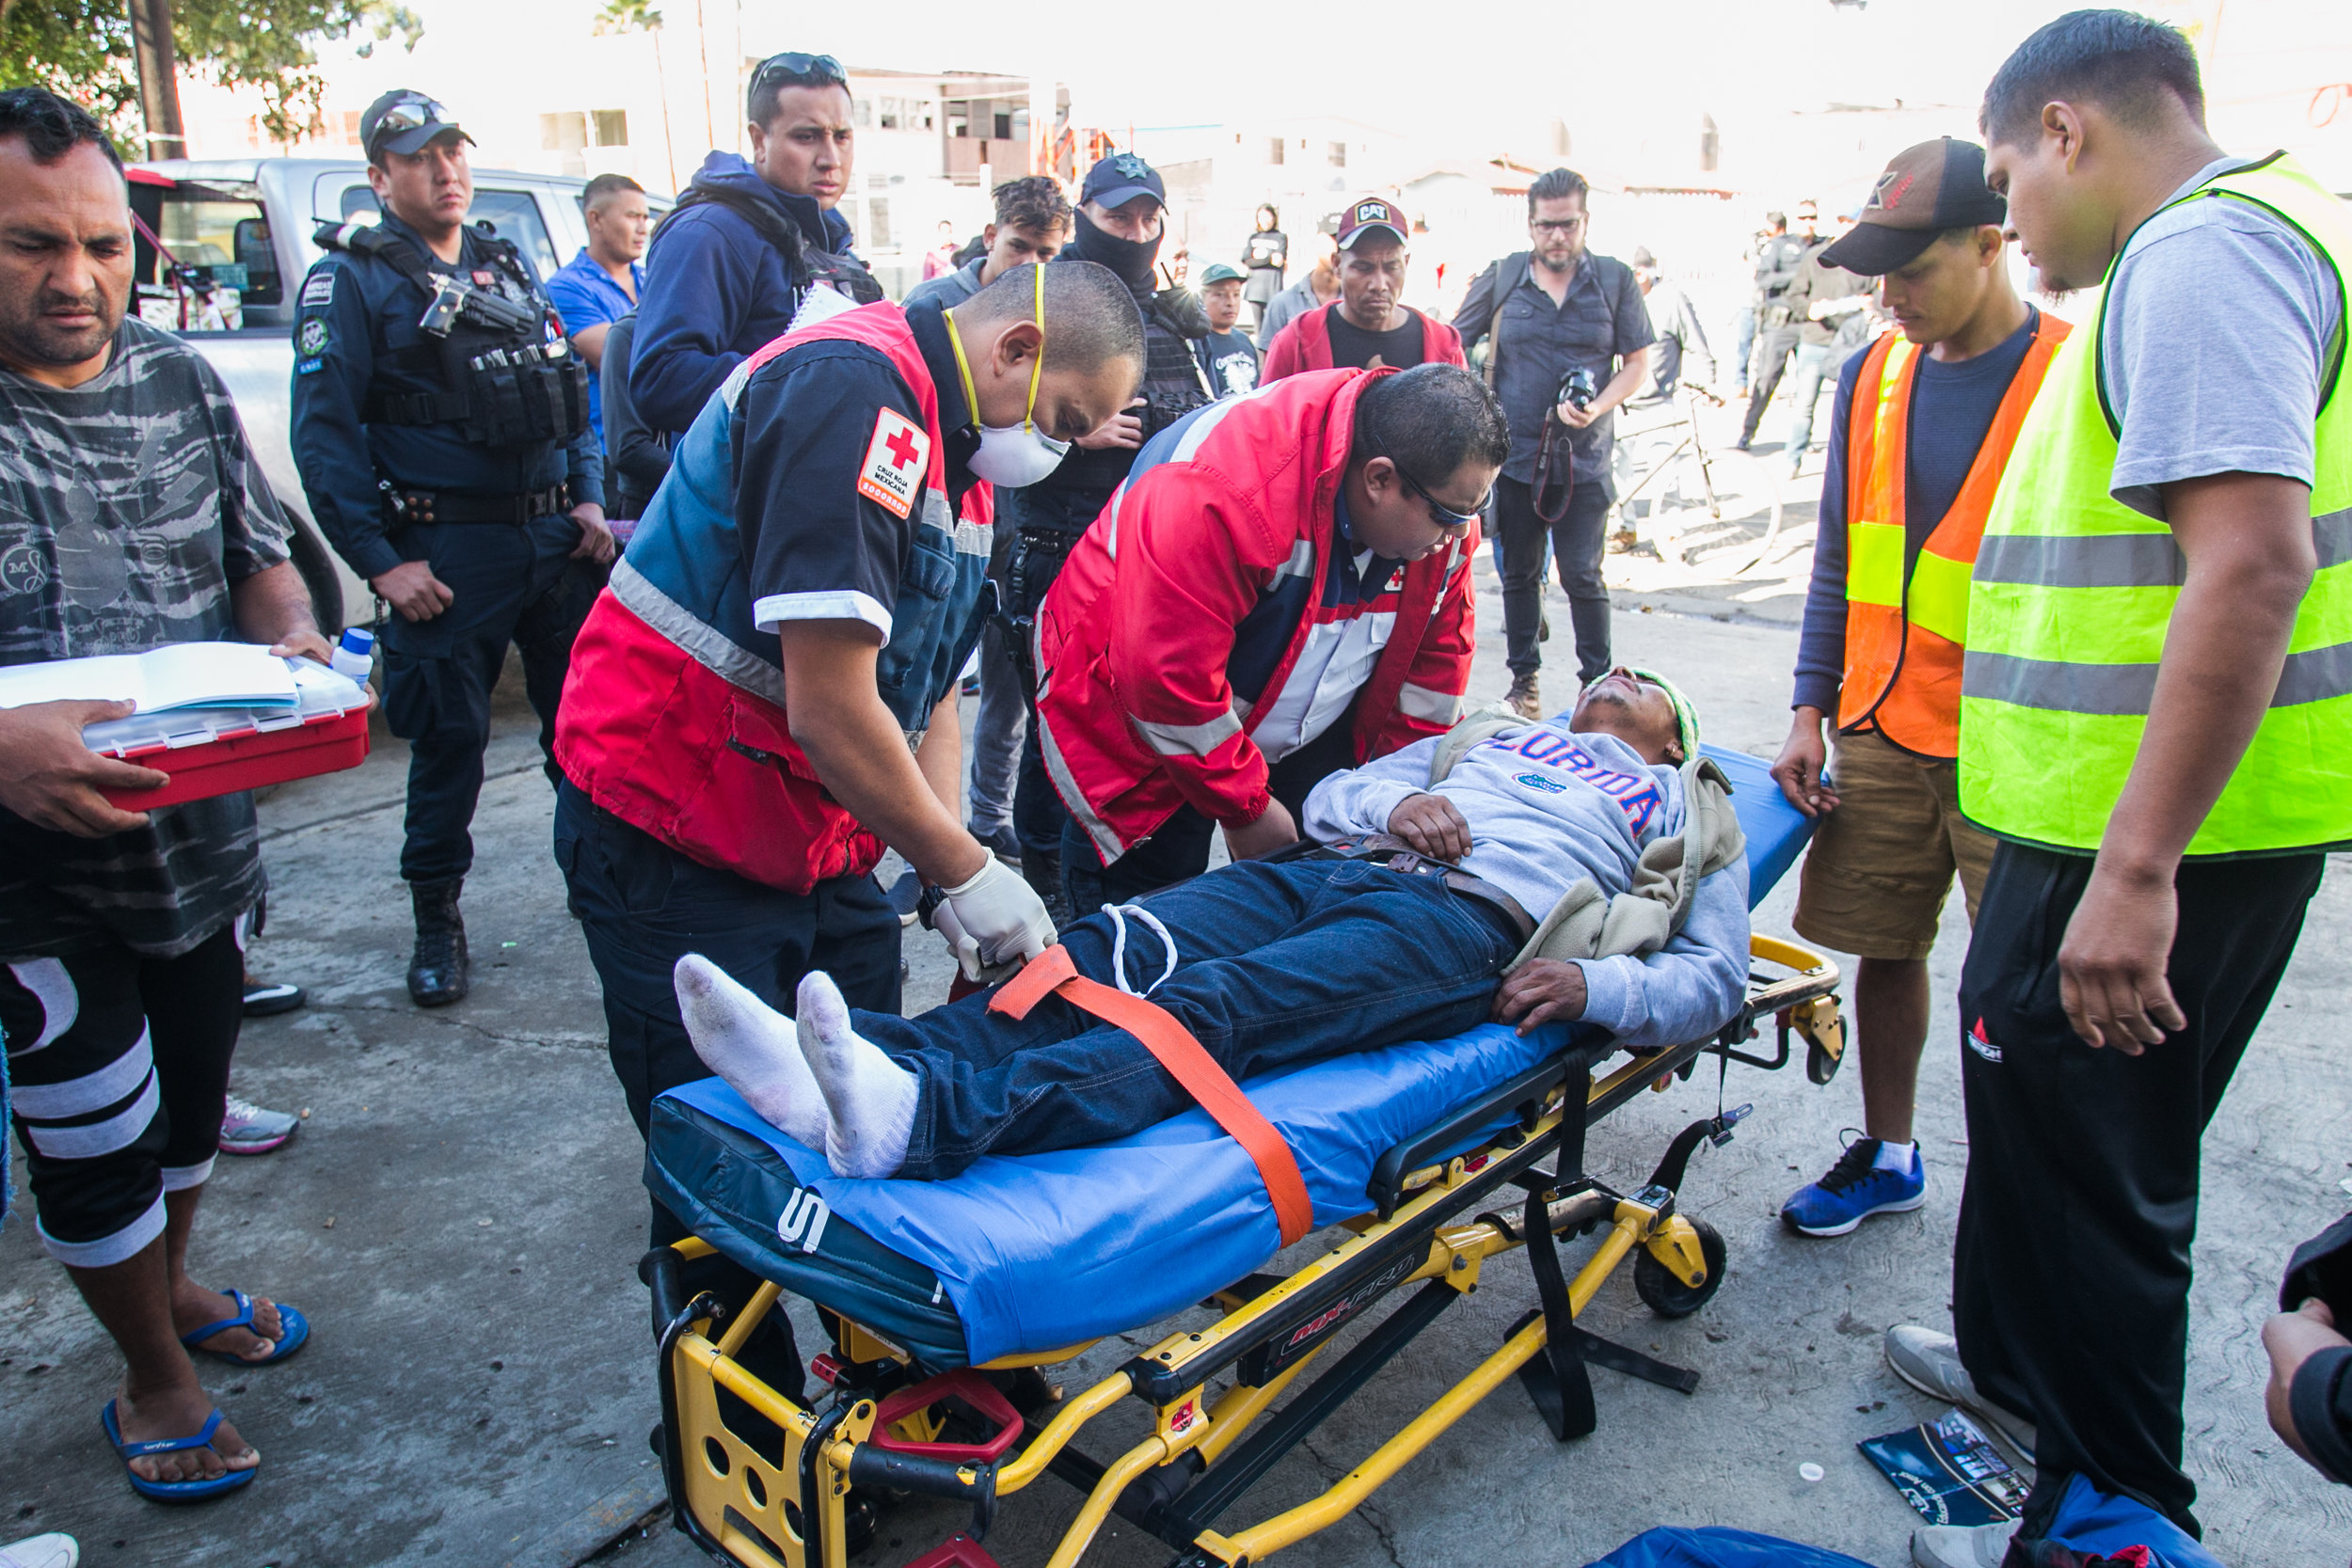 A man receives medical attention from emergency services after waiting for over 25 minutes. He began seizing and vomiting due to a lack of medication according to emergency responders on scene. Medical services were suspended in the facility several days prior in an effort to close the compound. Care from independent non-profits slipping past the police-guarded entrances is all that remain. Recent complaints from community members in Central Tijuana have lead to the government relocating migrant camps to low-income suburban communities on the outskirts of Tijuana.